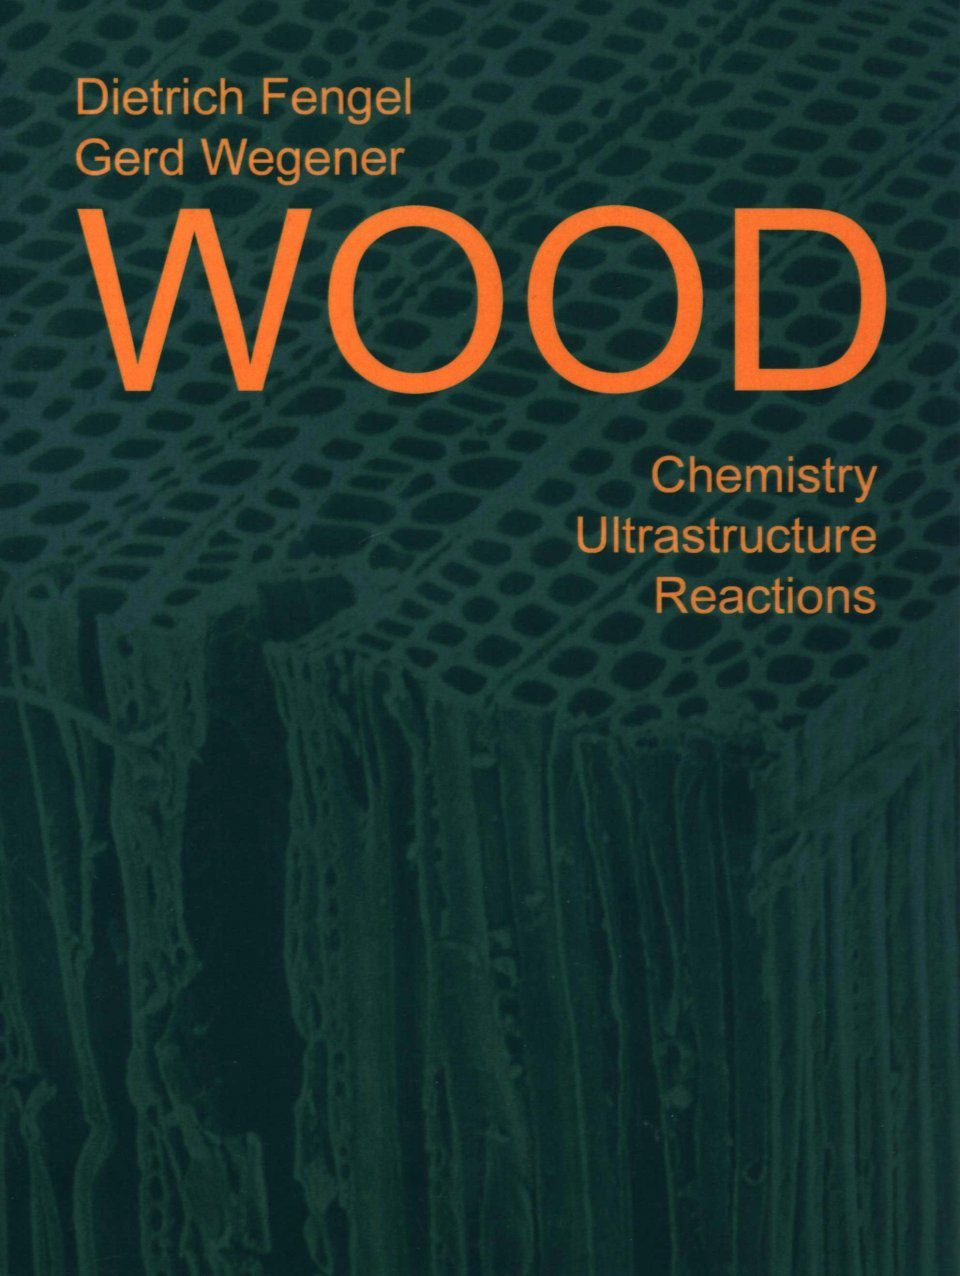 Wood: Chemistry, Ultrastructure, Reactions